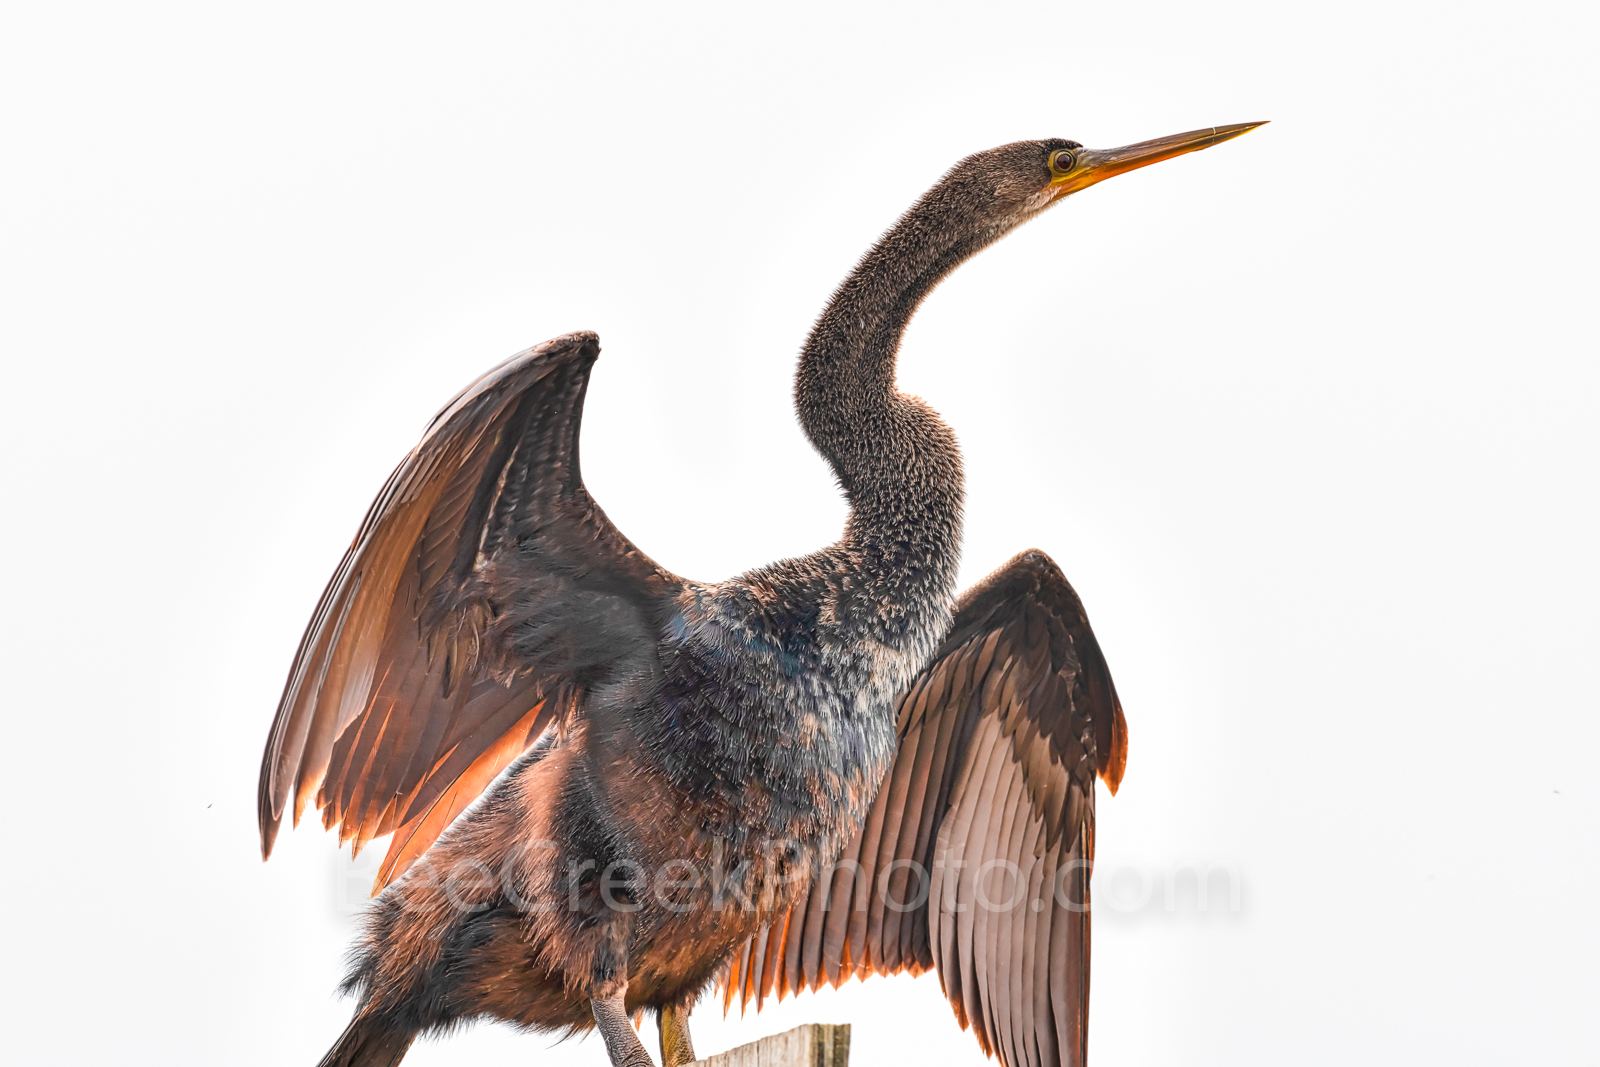 anhinga, sea bird, water, water bird, fog, white, wings, feathers, photos, bird photos, spear fish, beaks, fish, diving,snake bird, darter, photo